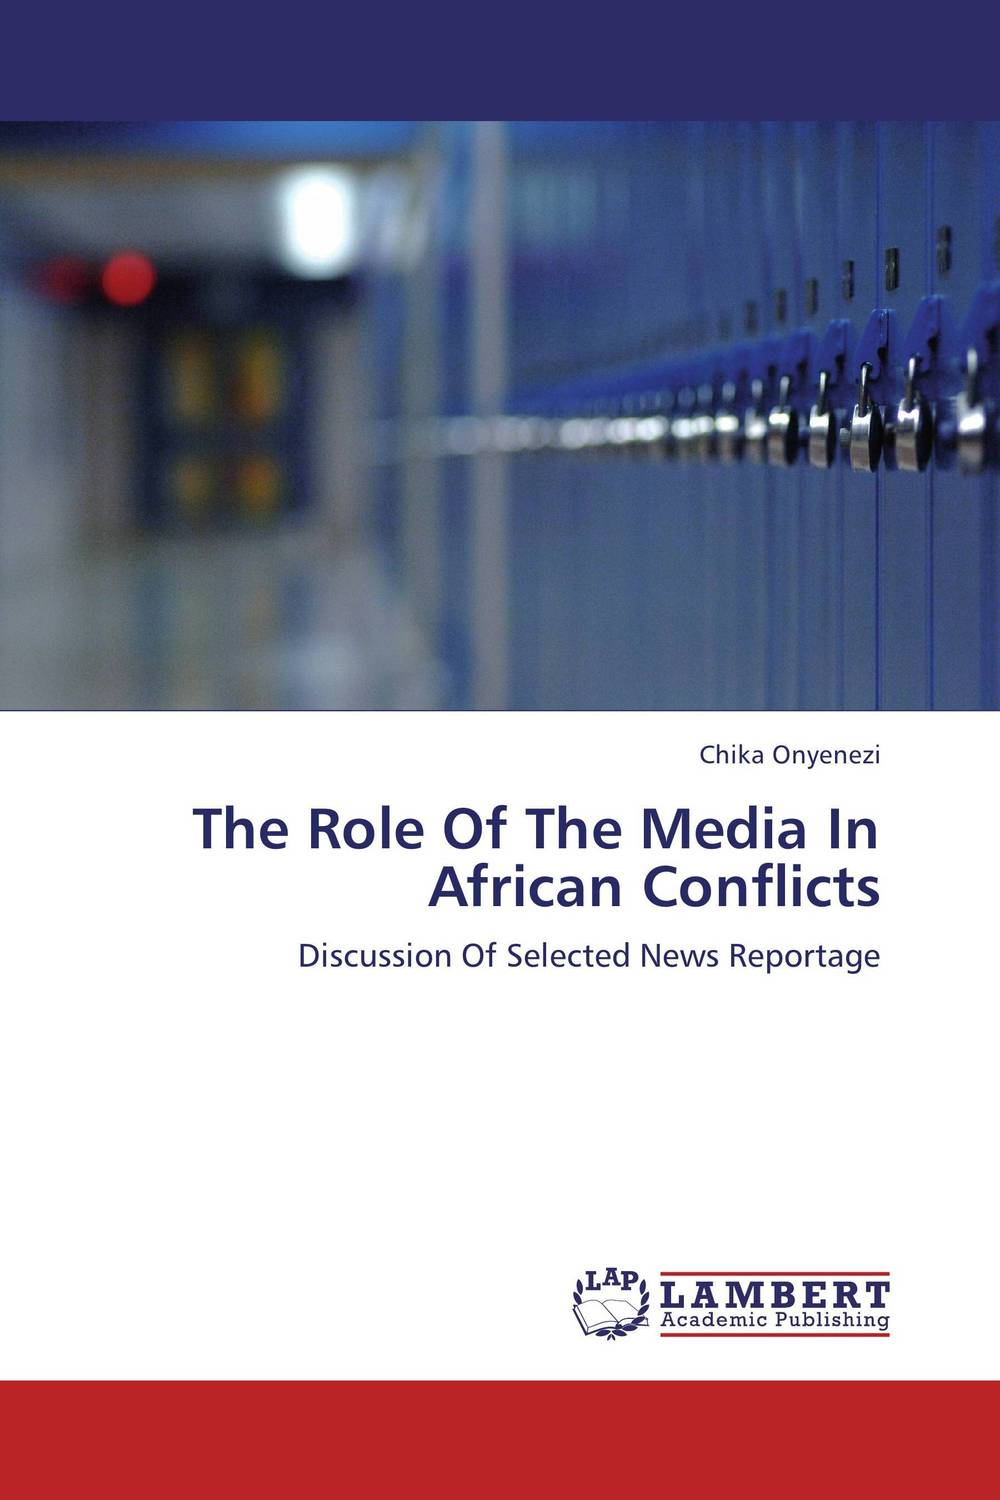 The Role Of The Media In African Conflicts arcade ndoricimpa inflation output growth and their uncertainties in south africa empirical evidence from an asymmetric multivariate garch m model